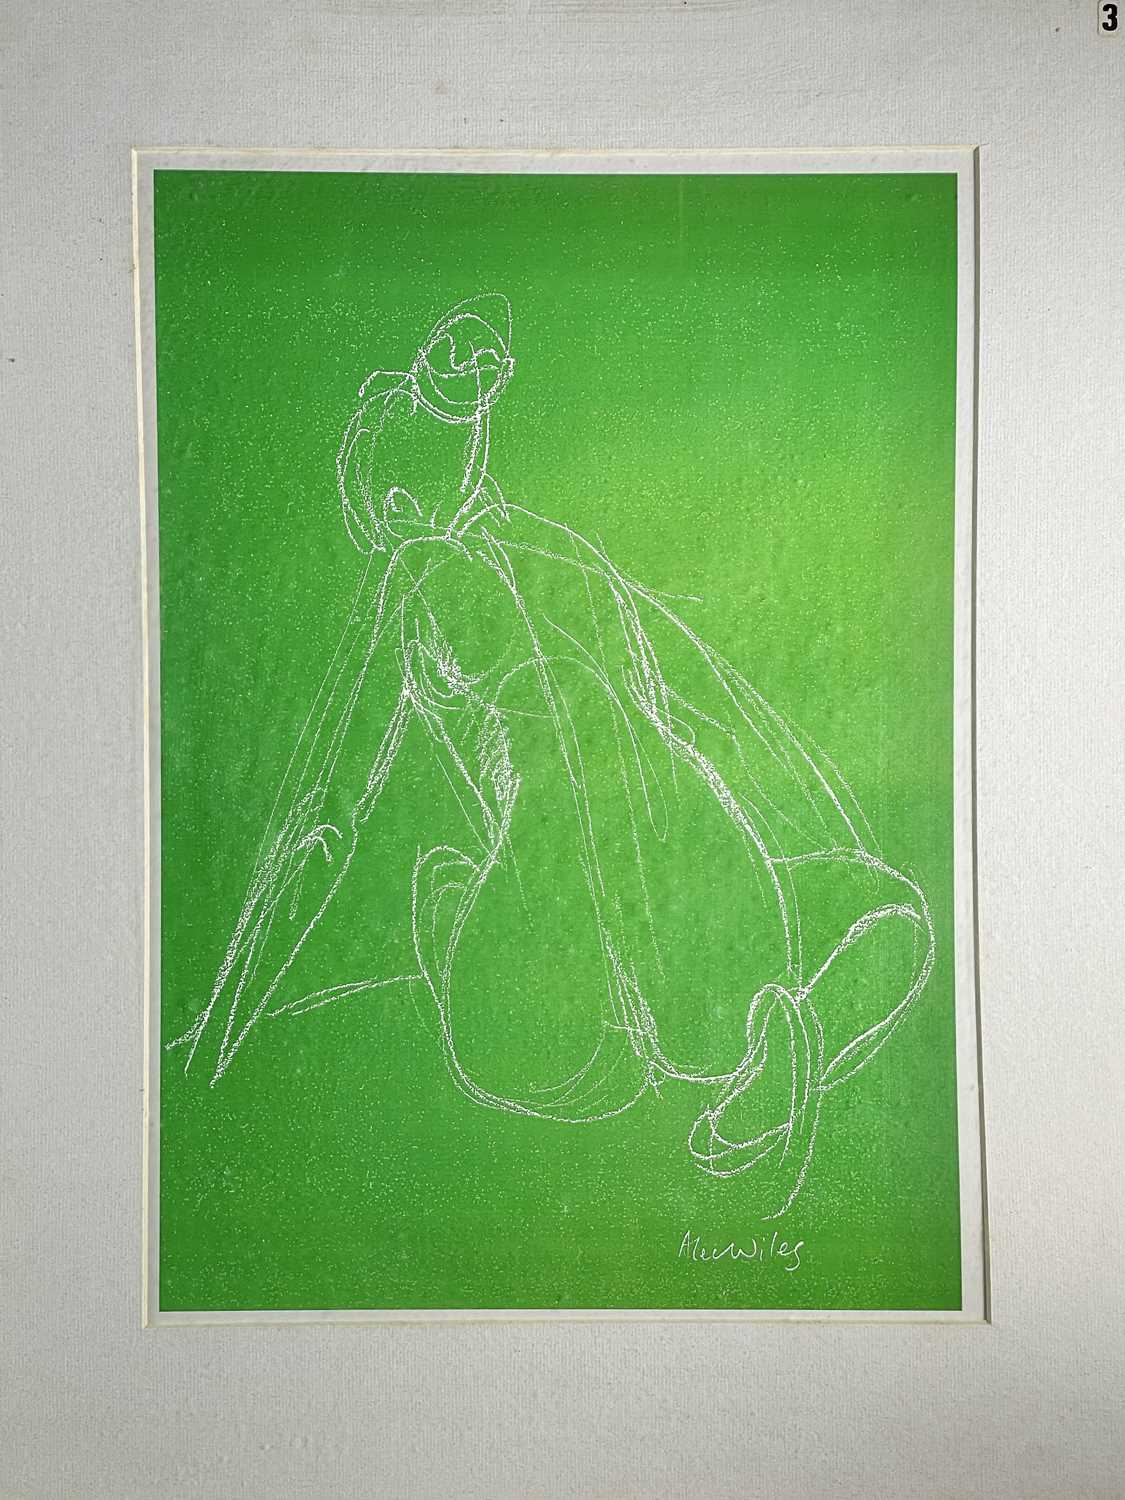 Alec WILES (1924) Various works including prints - Image 29 of 30